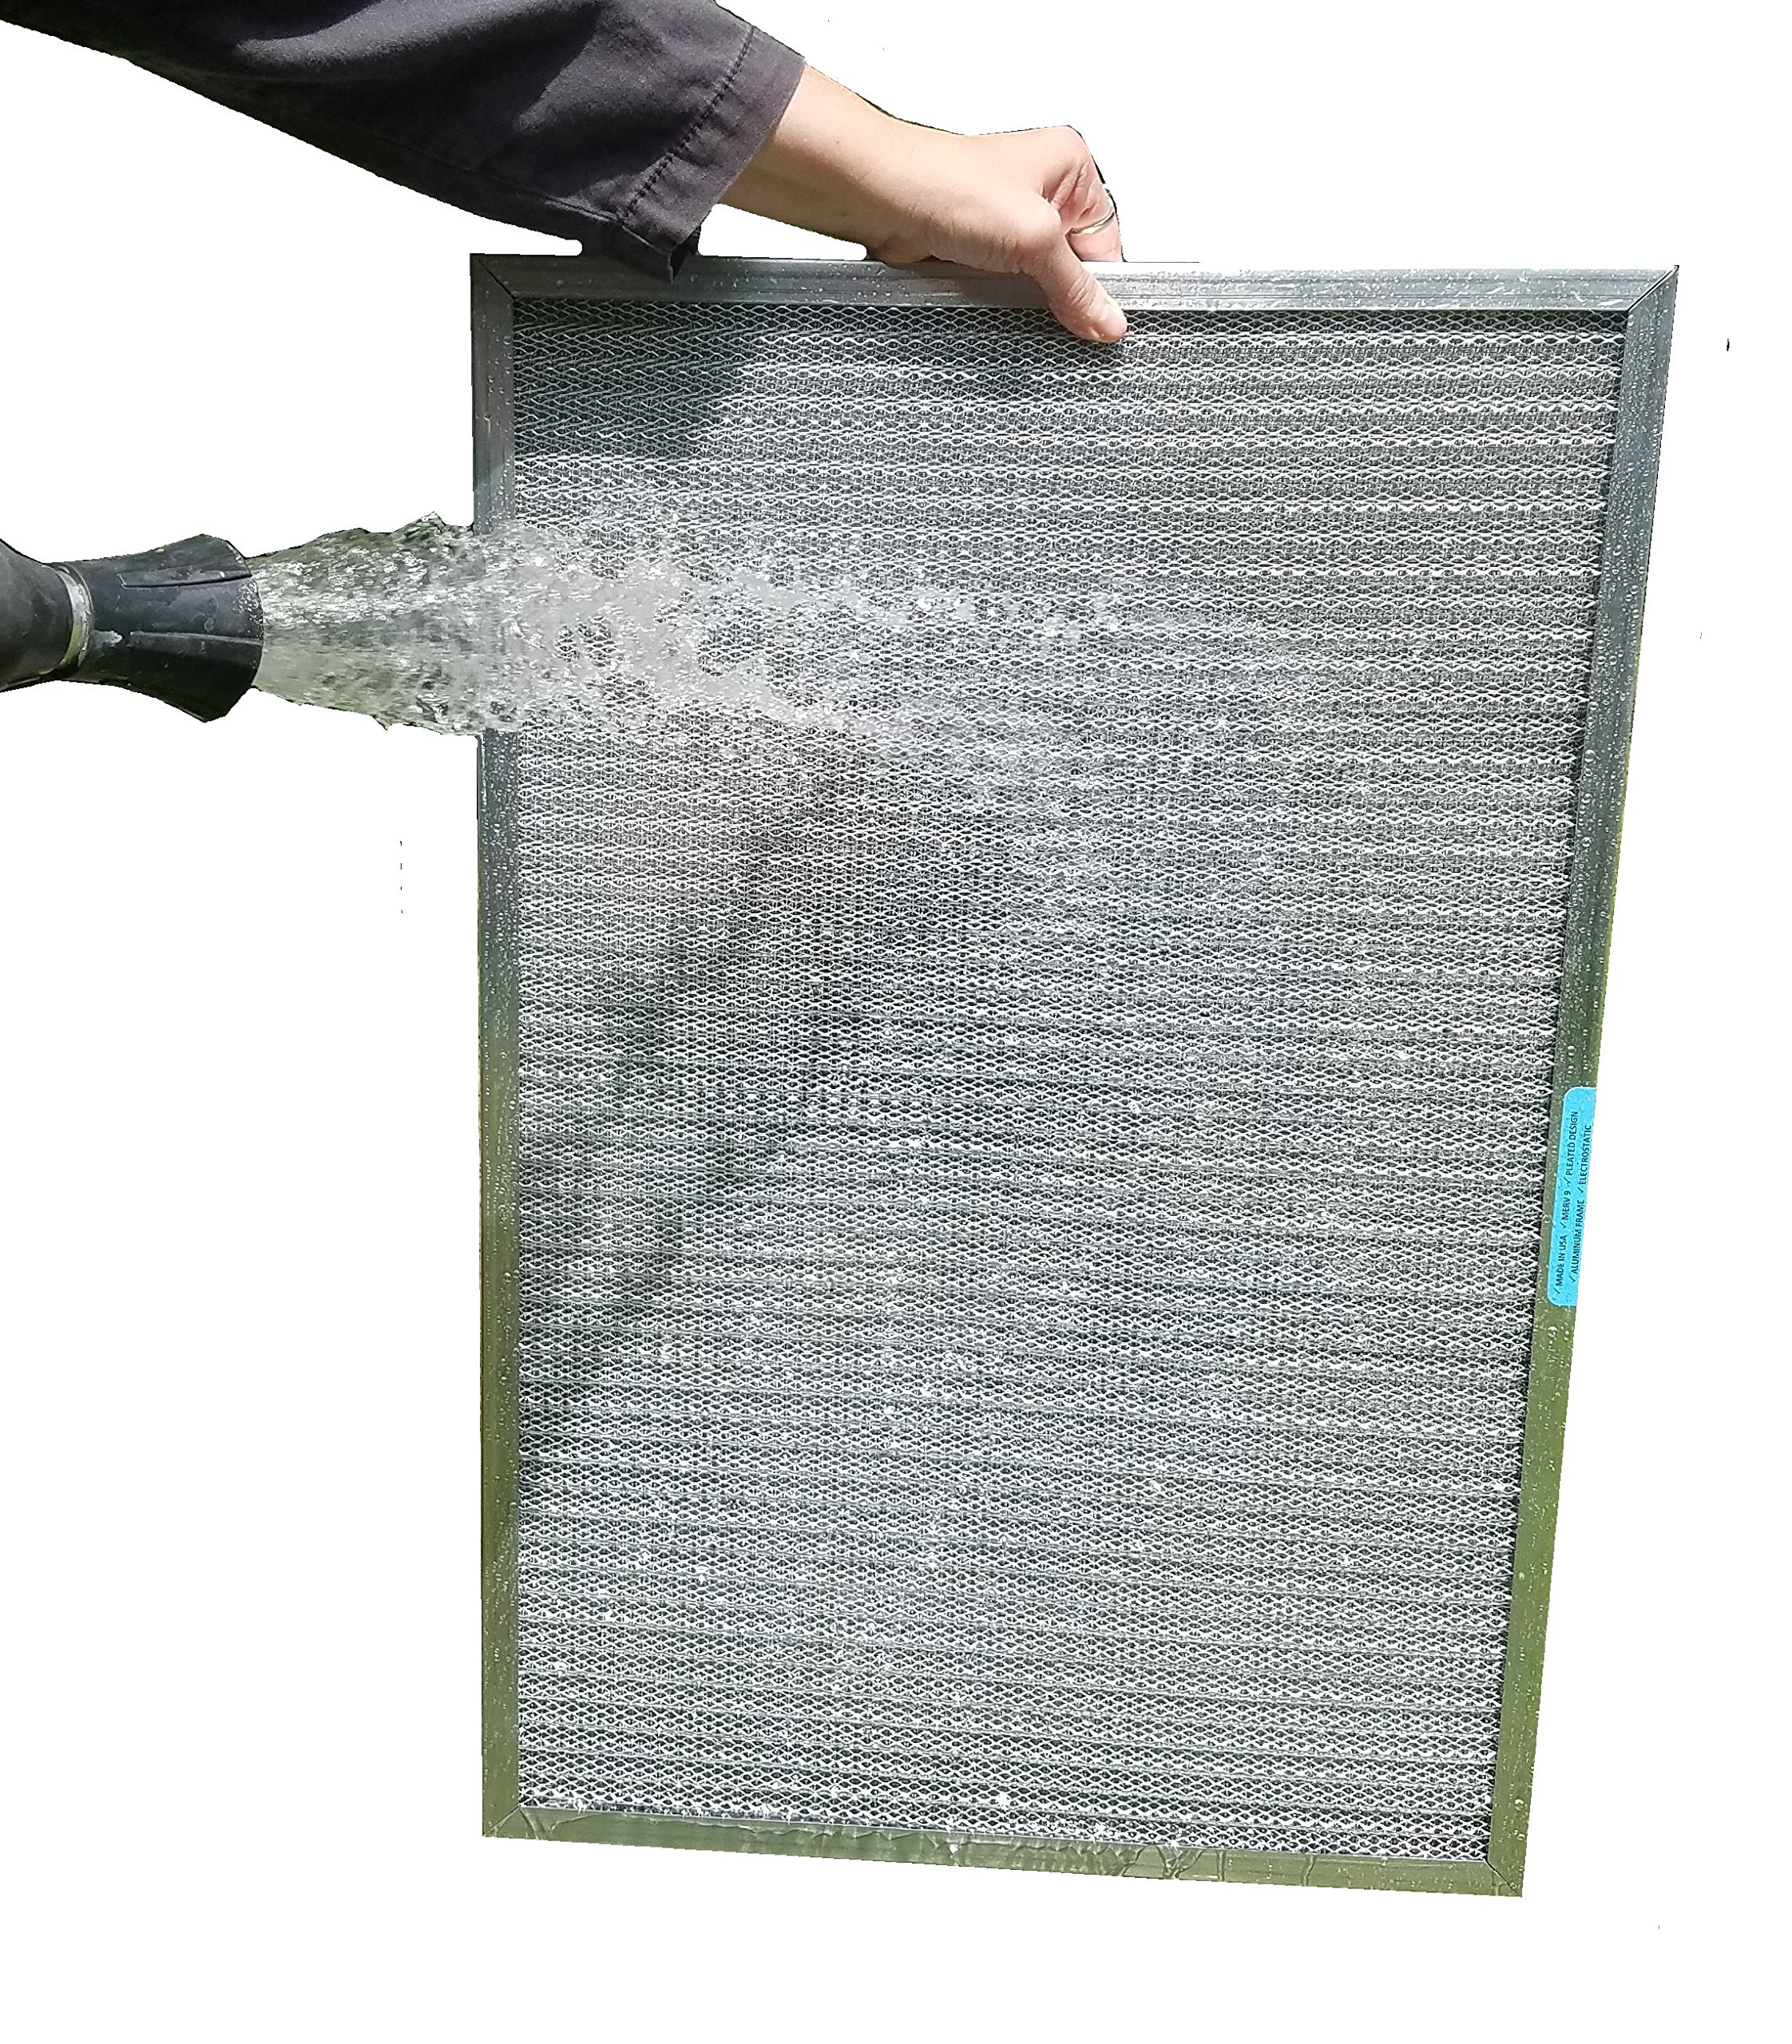 20x20x1 ALLERGY MAGNET WASHABLE FILTER - Highest MERV Rating in Permanent Electrostatic Furnace A/C Filters